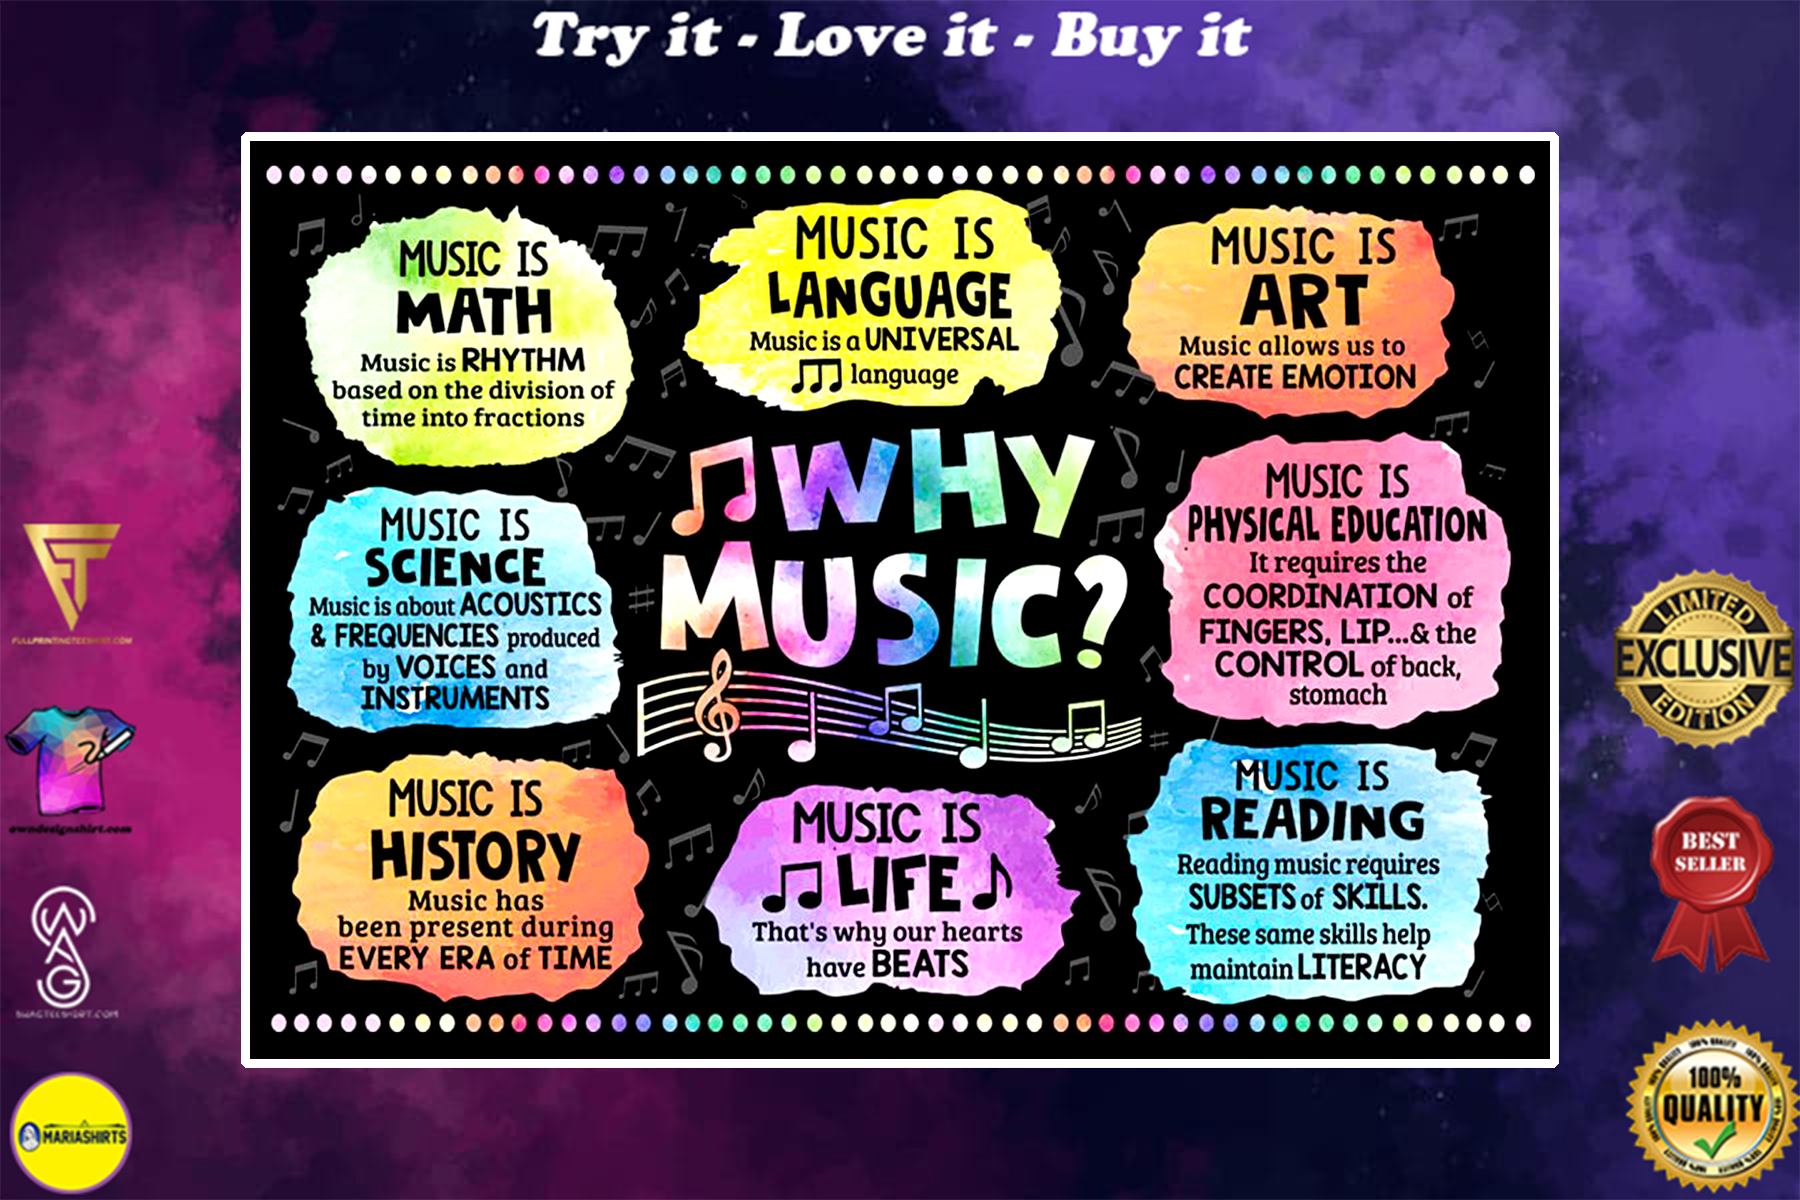 why music music is language music is art music is math music is life poster